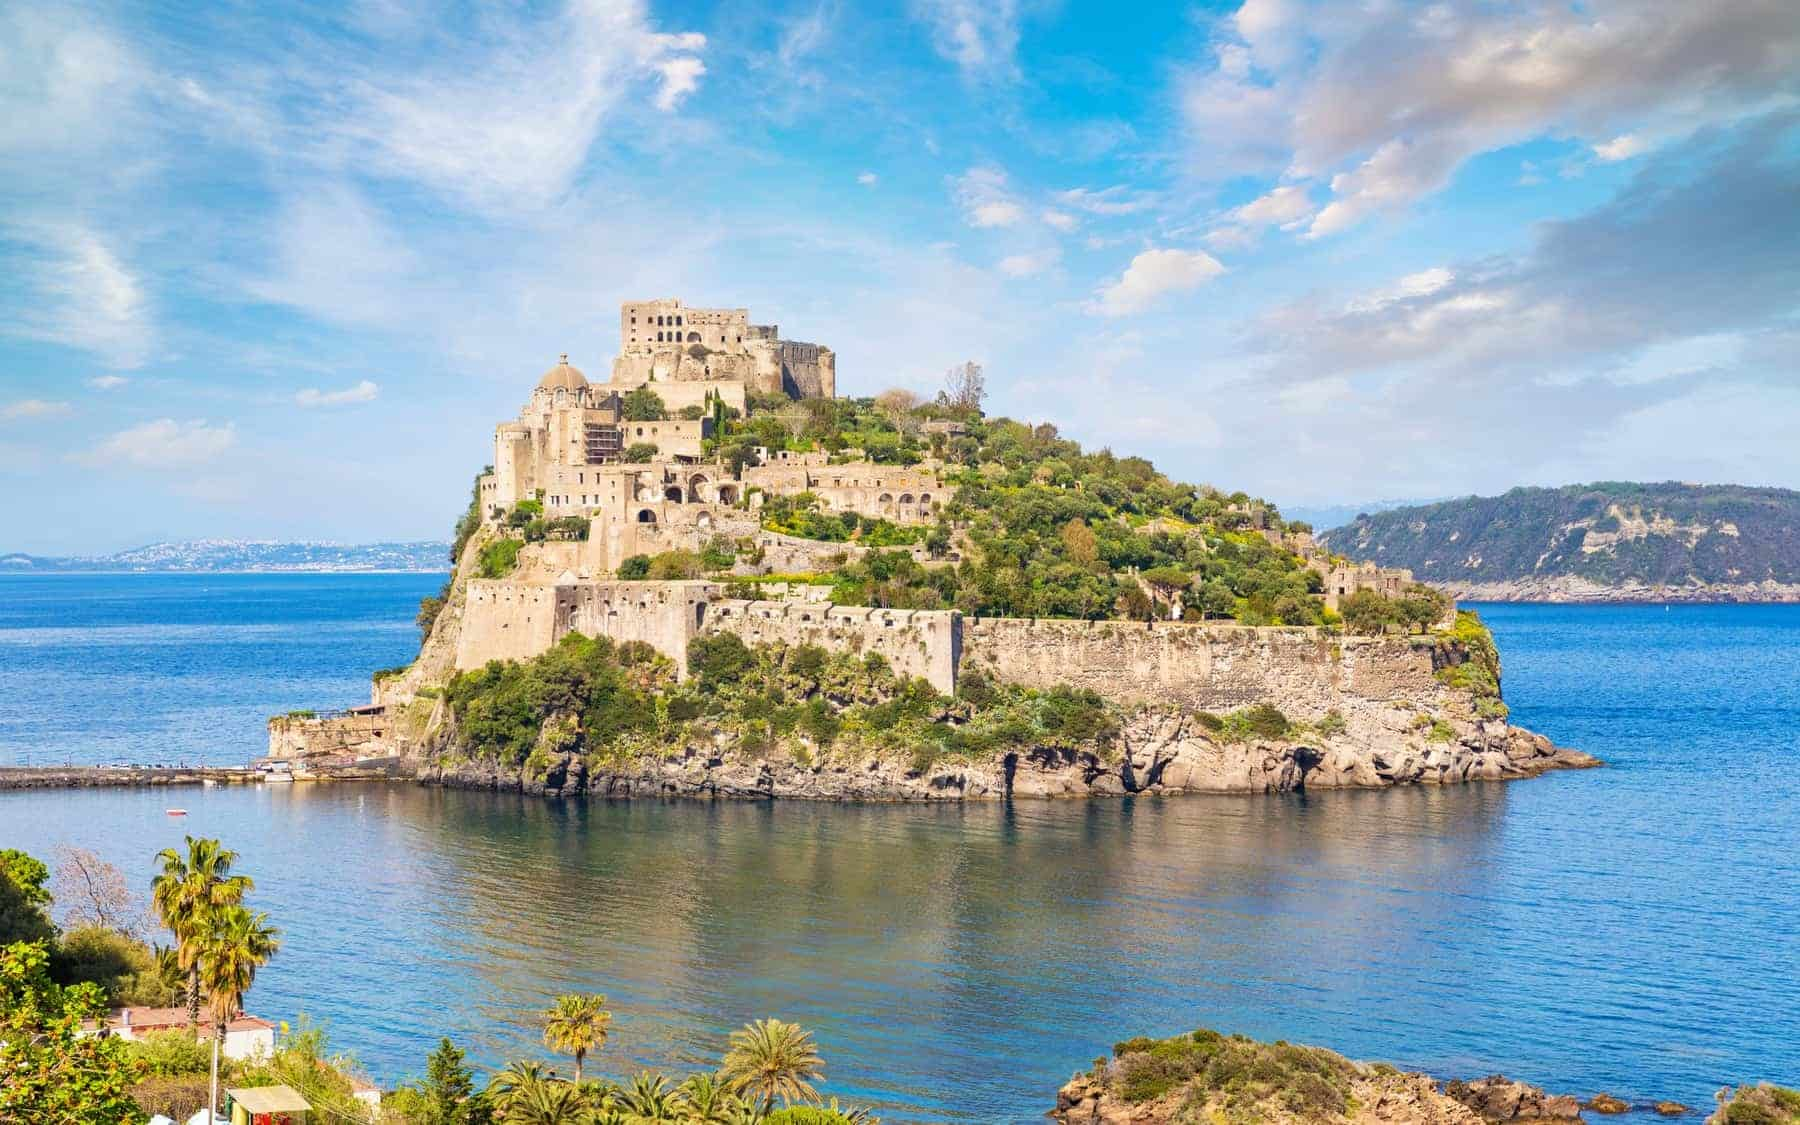 Aragonese Castle or Castello Aragonese is most visited landmark and tourist destination near Ischia island, Italy.